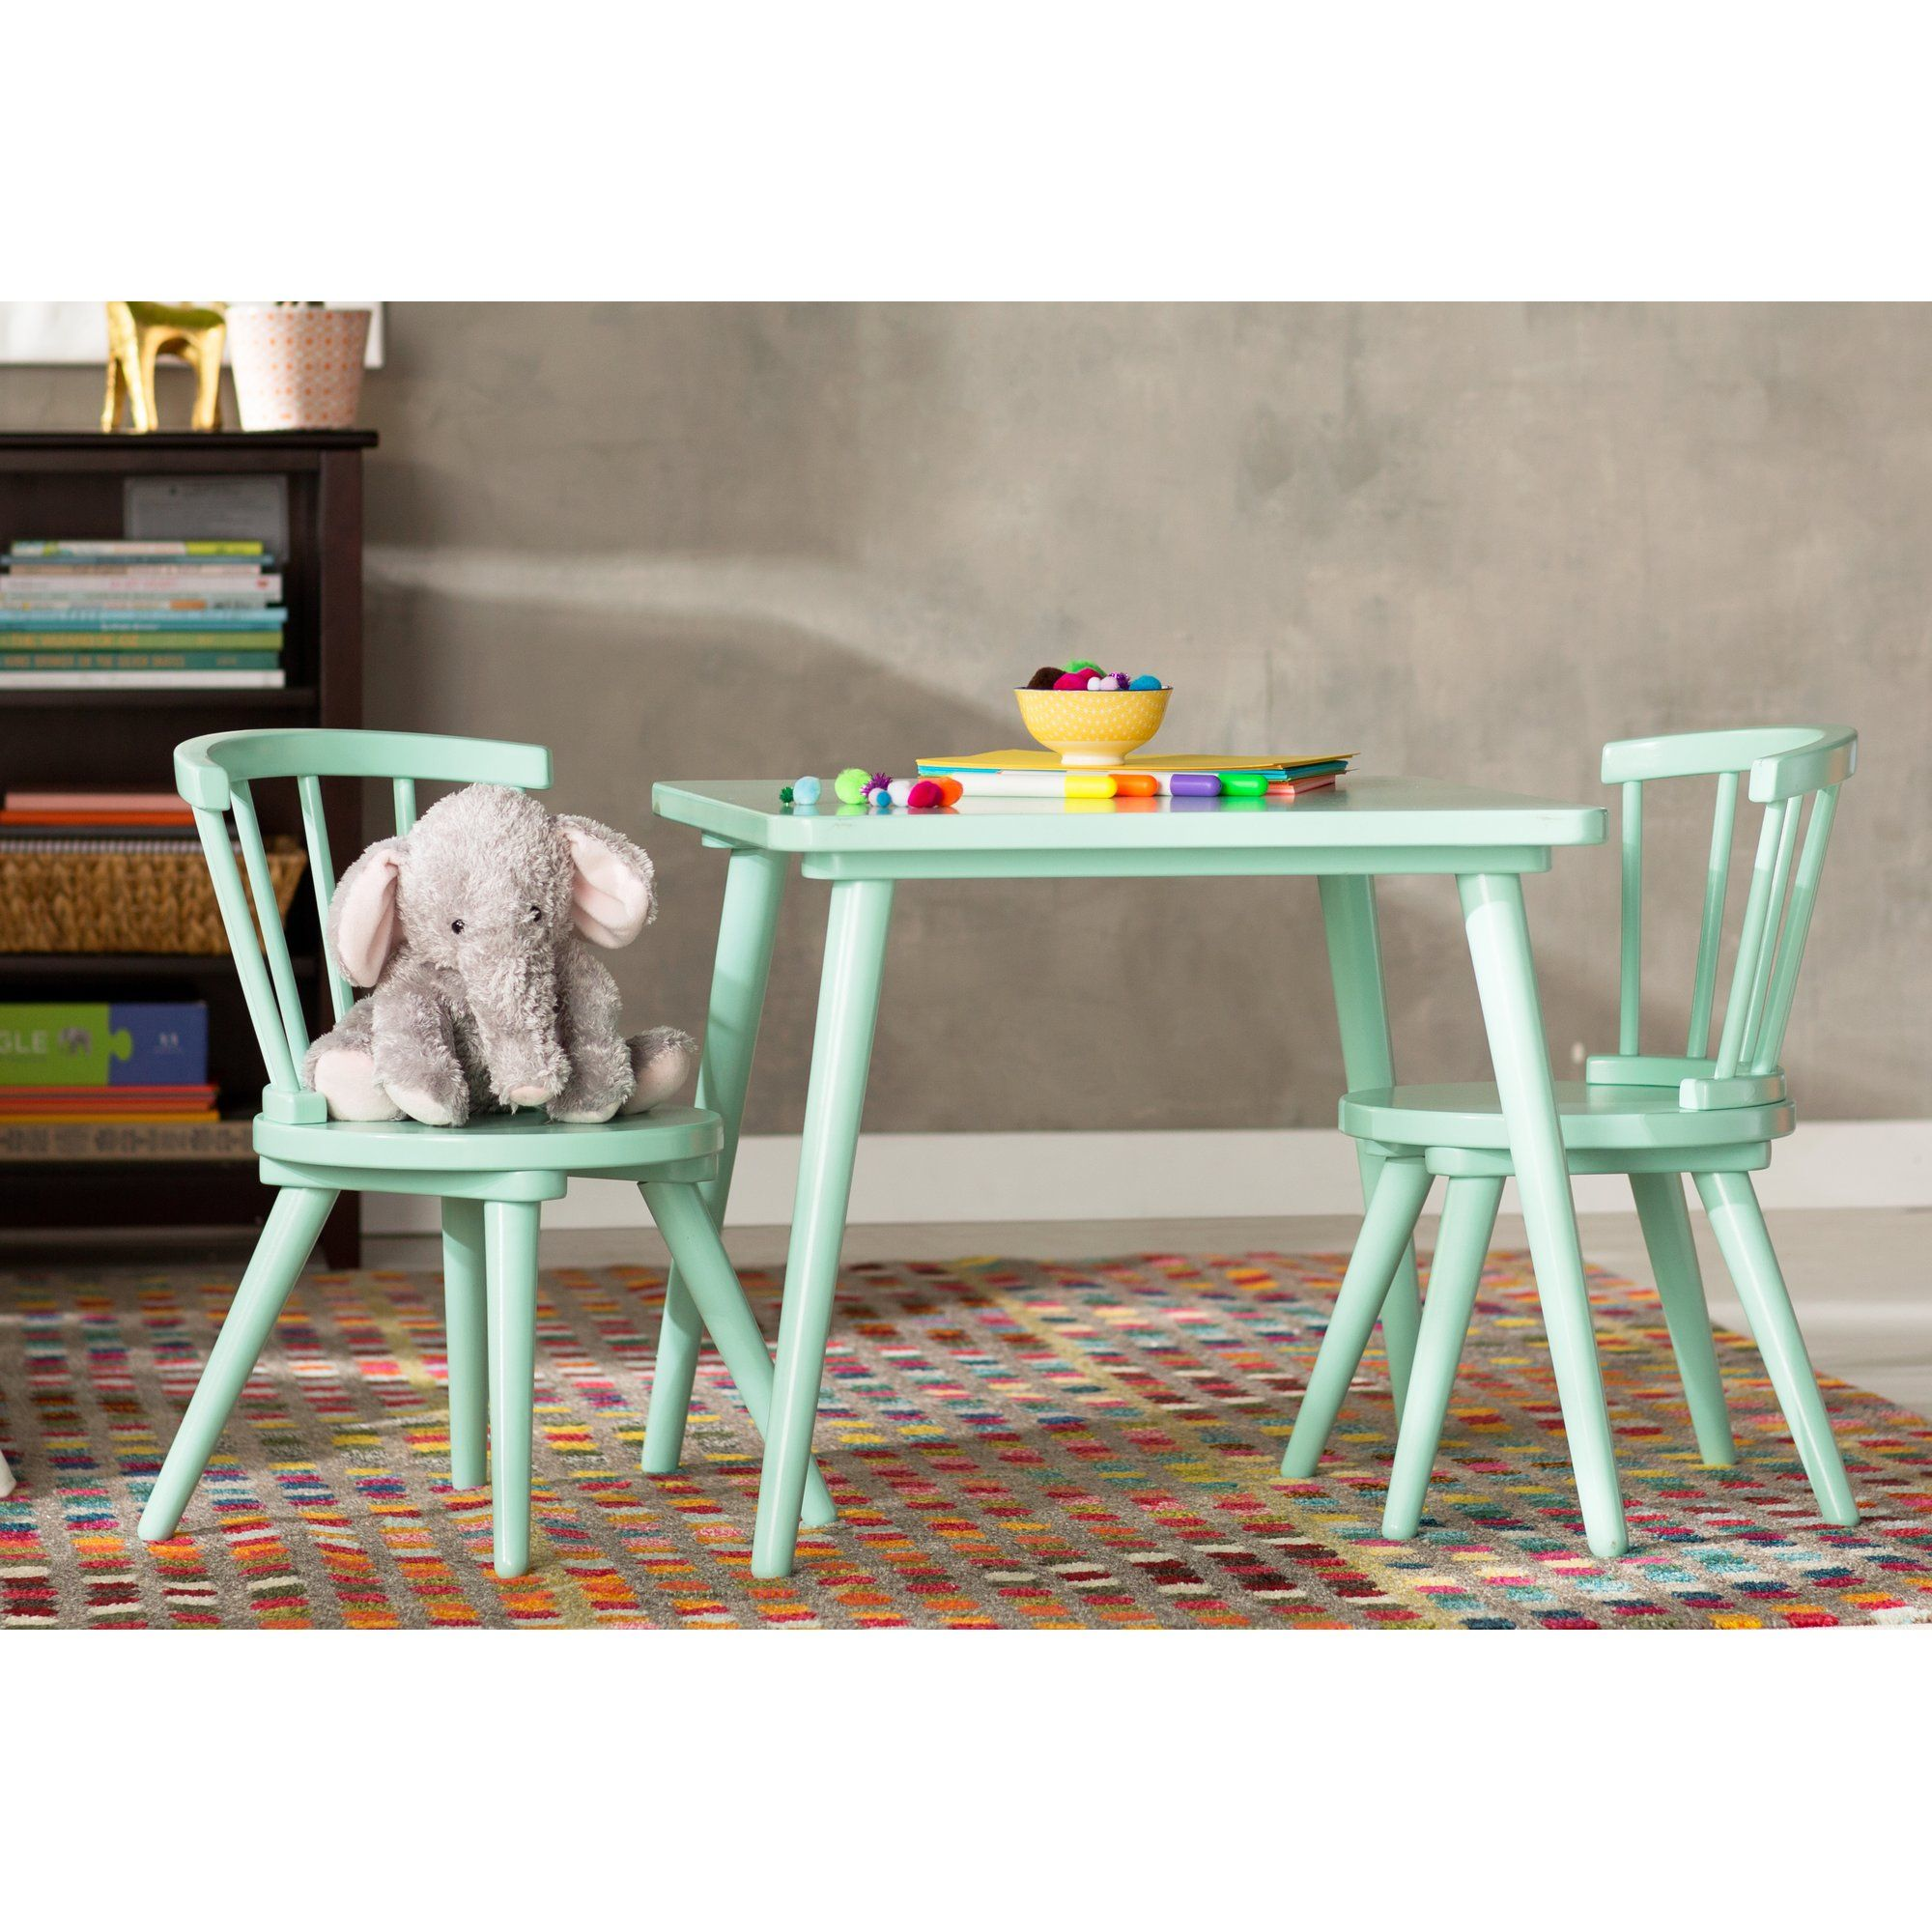 Justine Windsor 3 Piece Table and Chair Set by Delta   Windsor F.C. ...